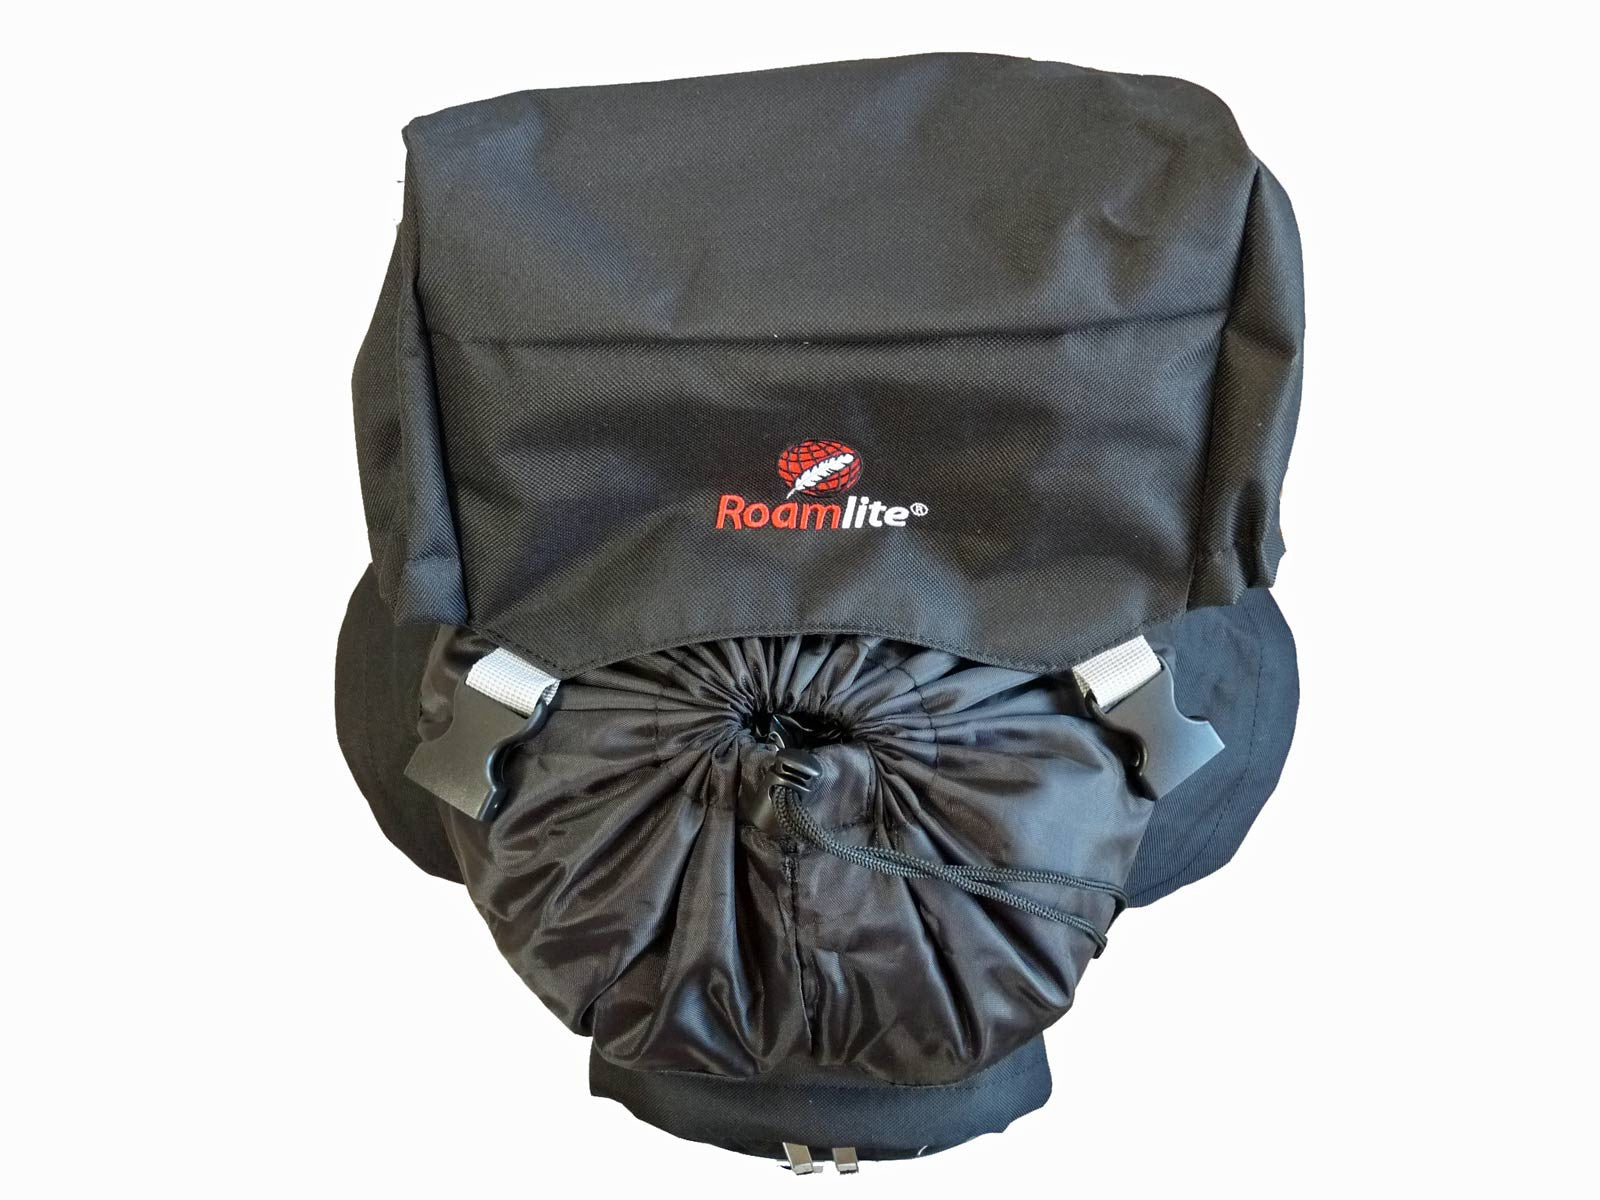 80 100 125 litre backpack black top view